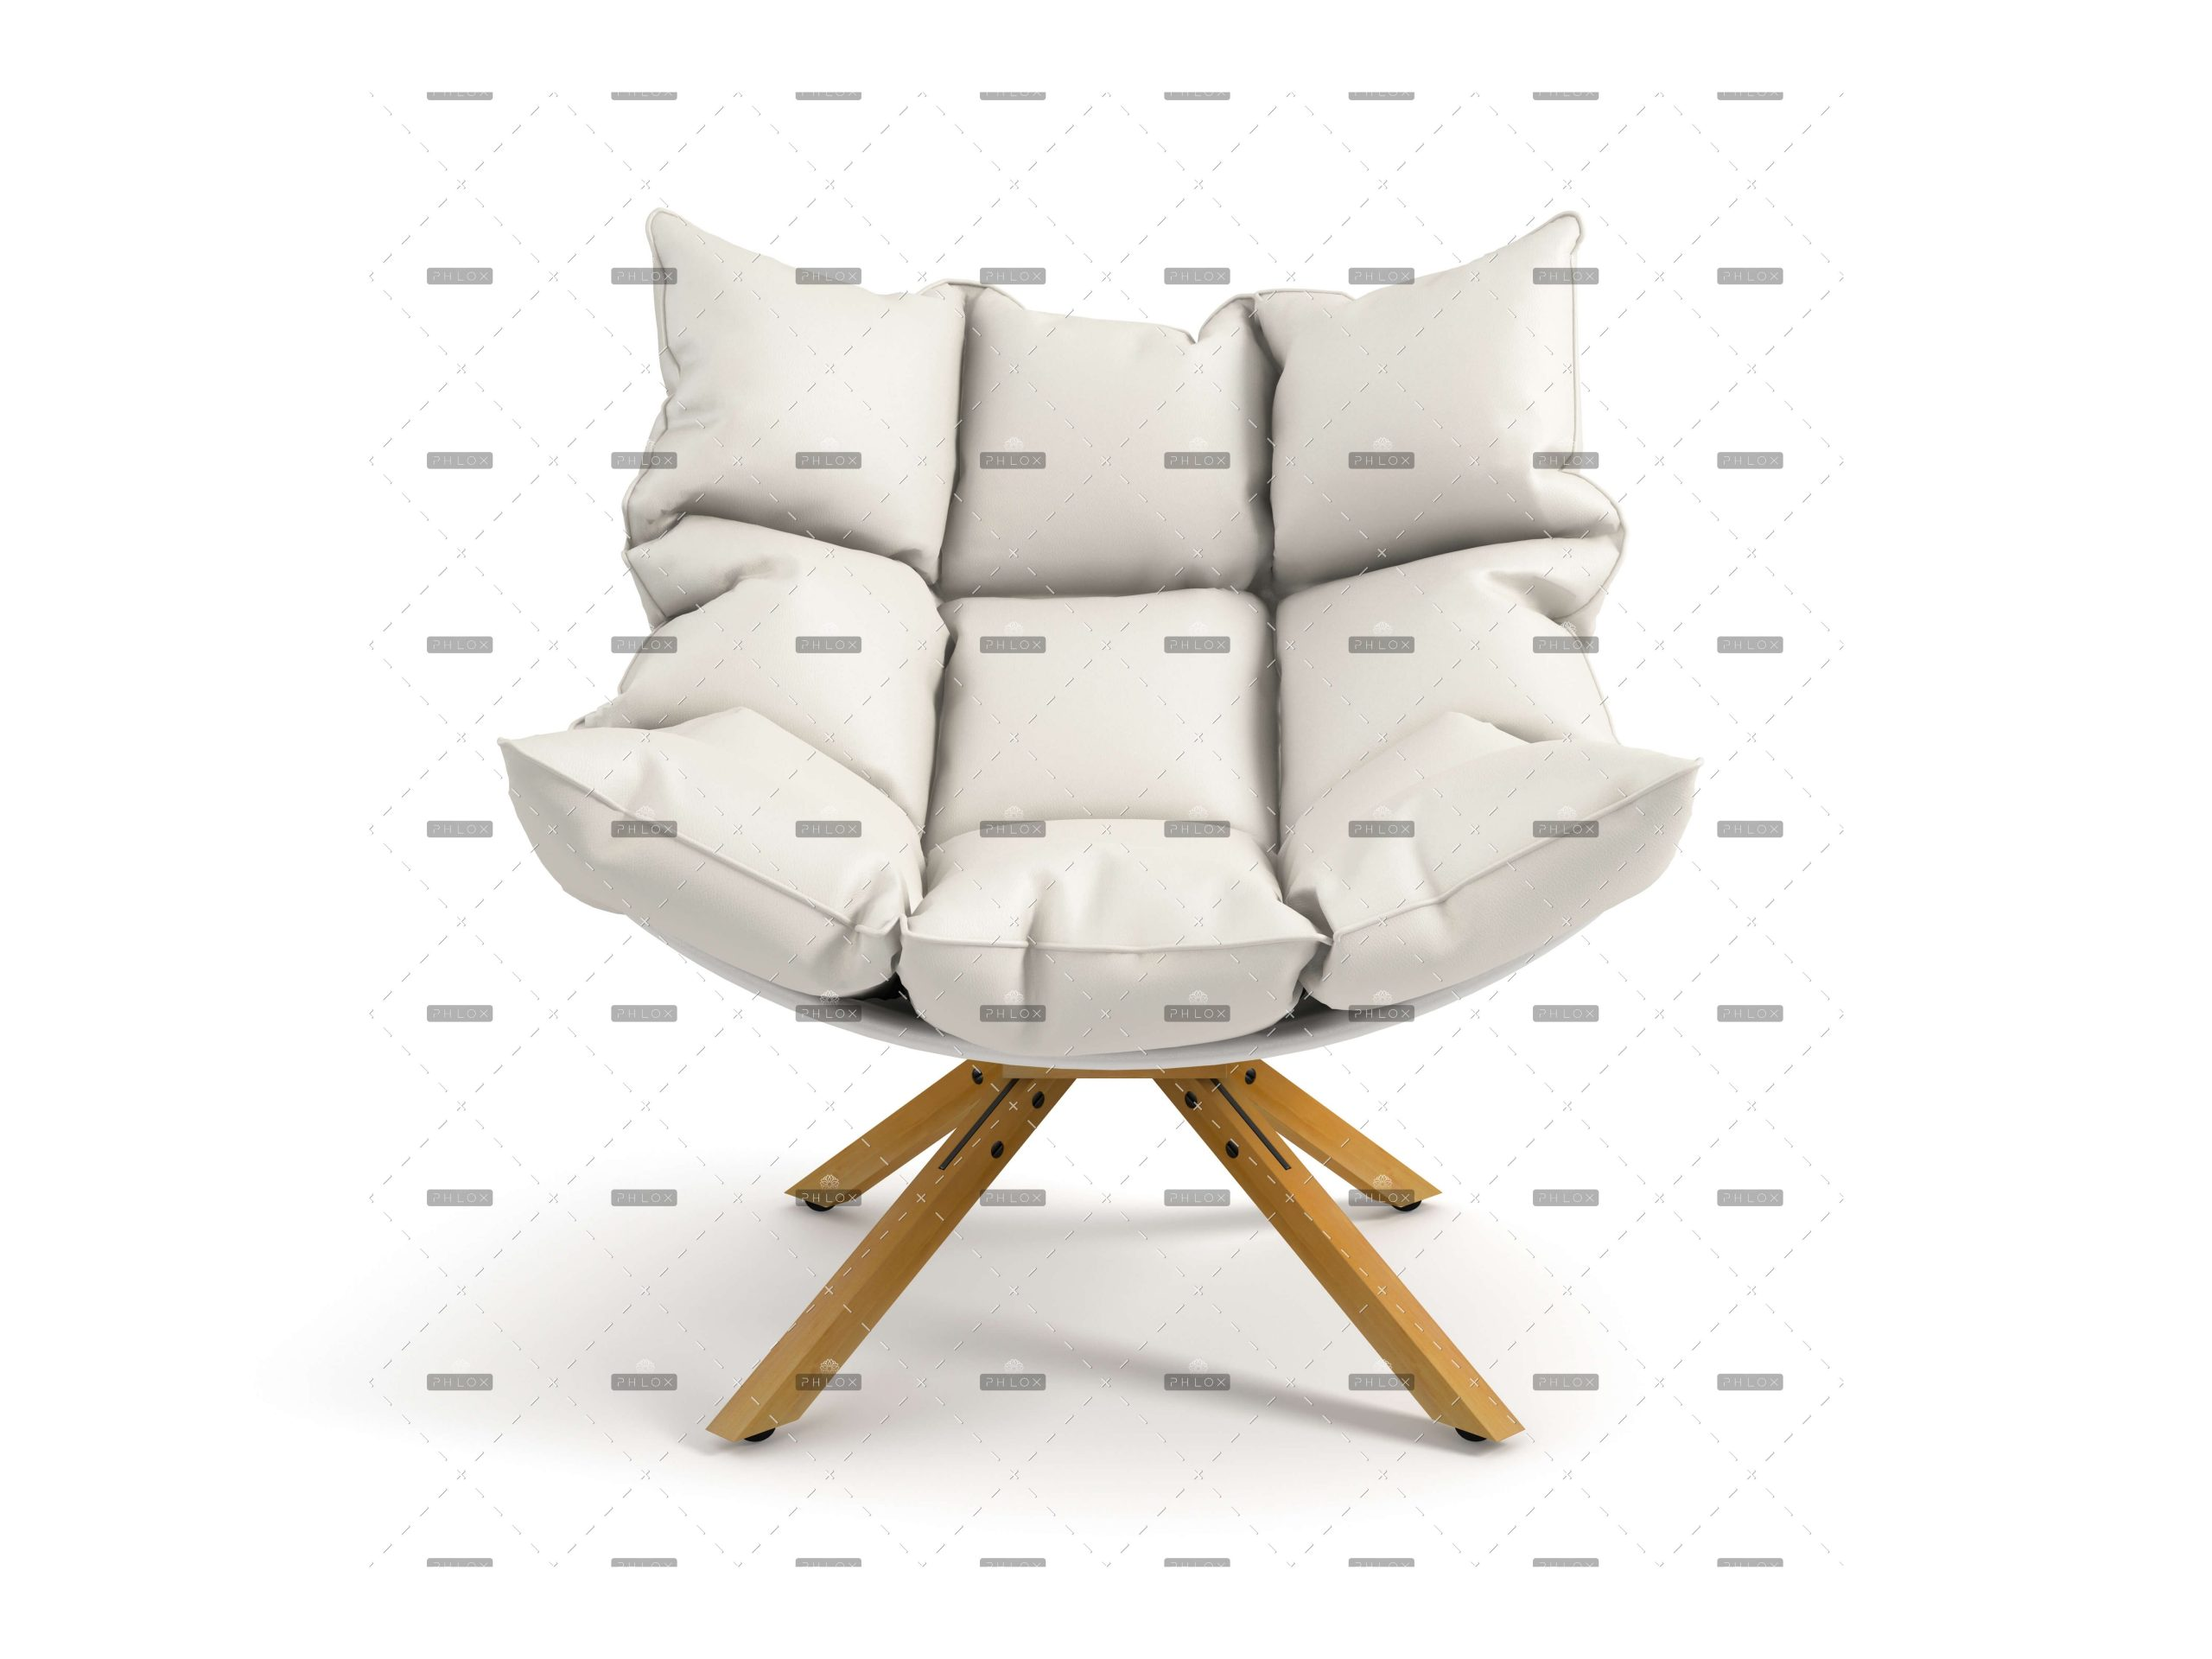 demo-attachment-92-armchair-isolated-on-white-background-3d-PCGLE73